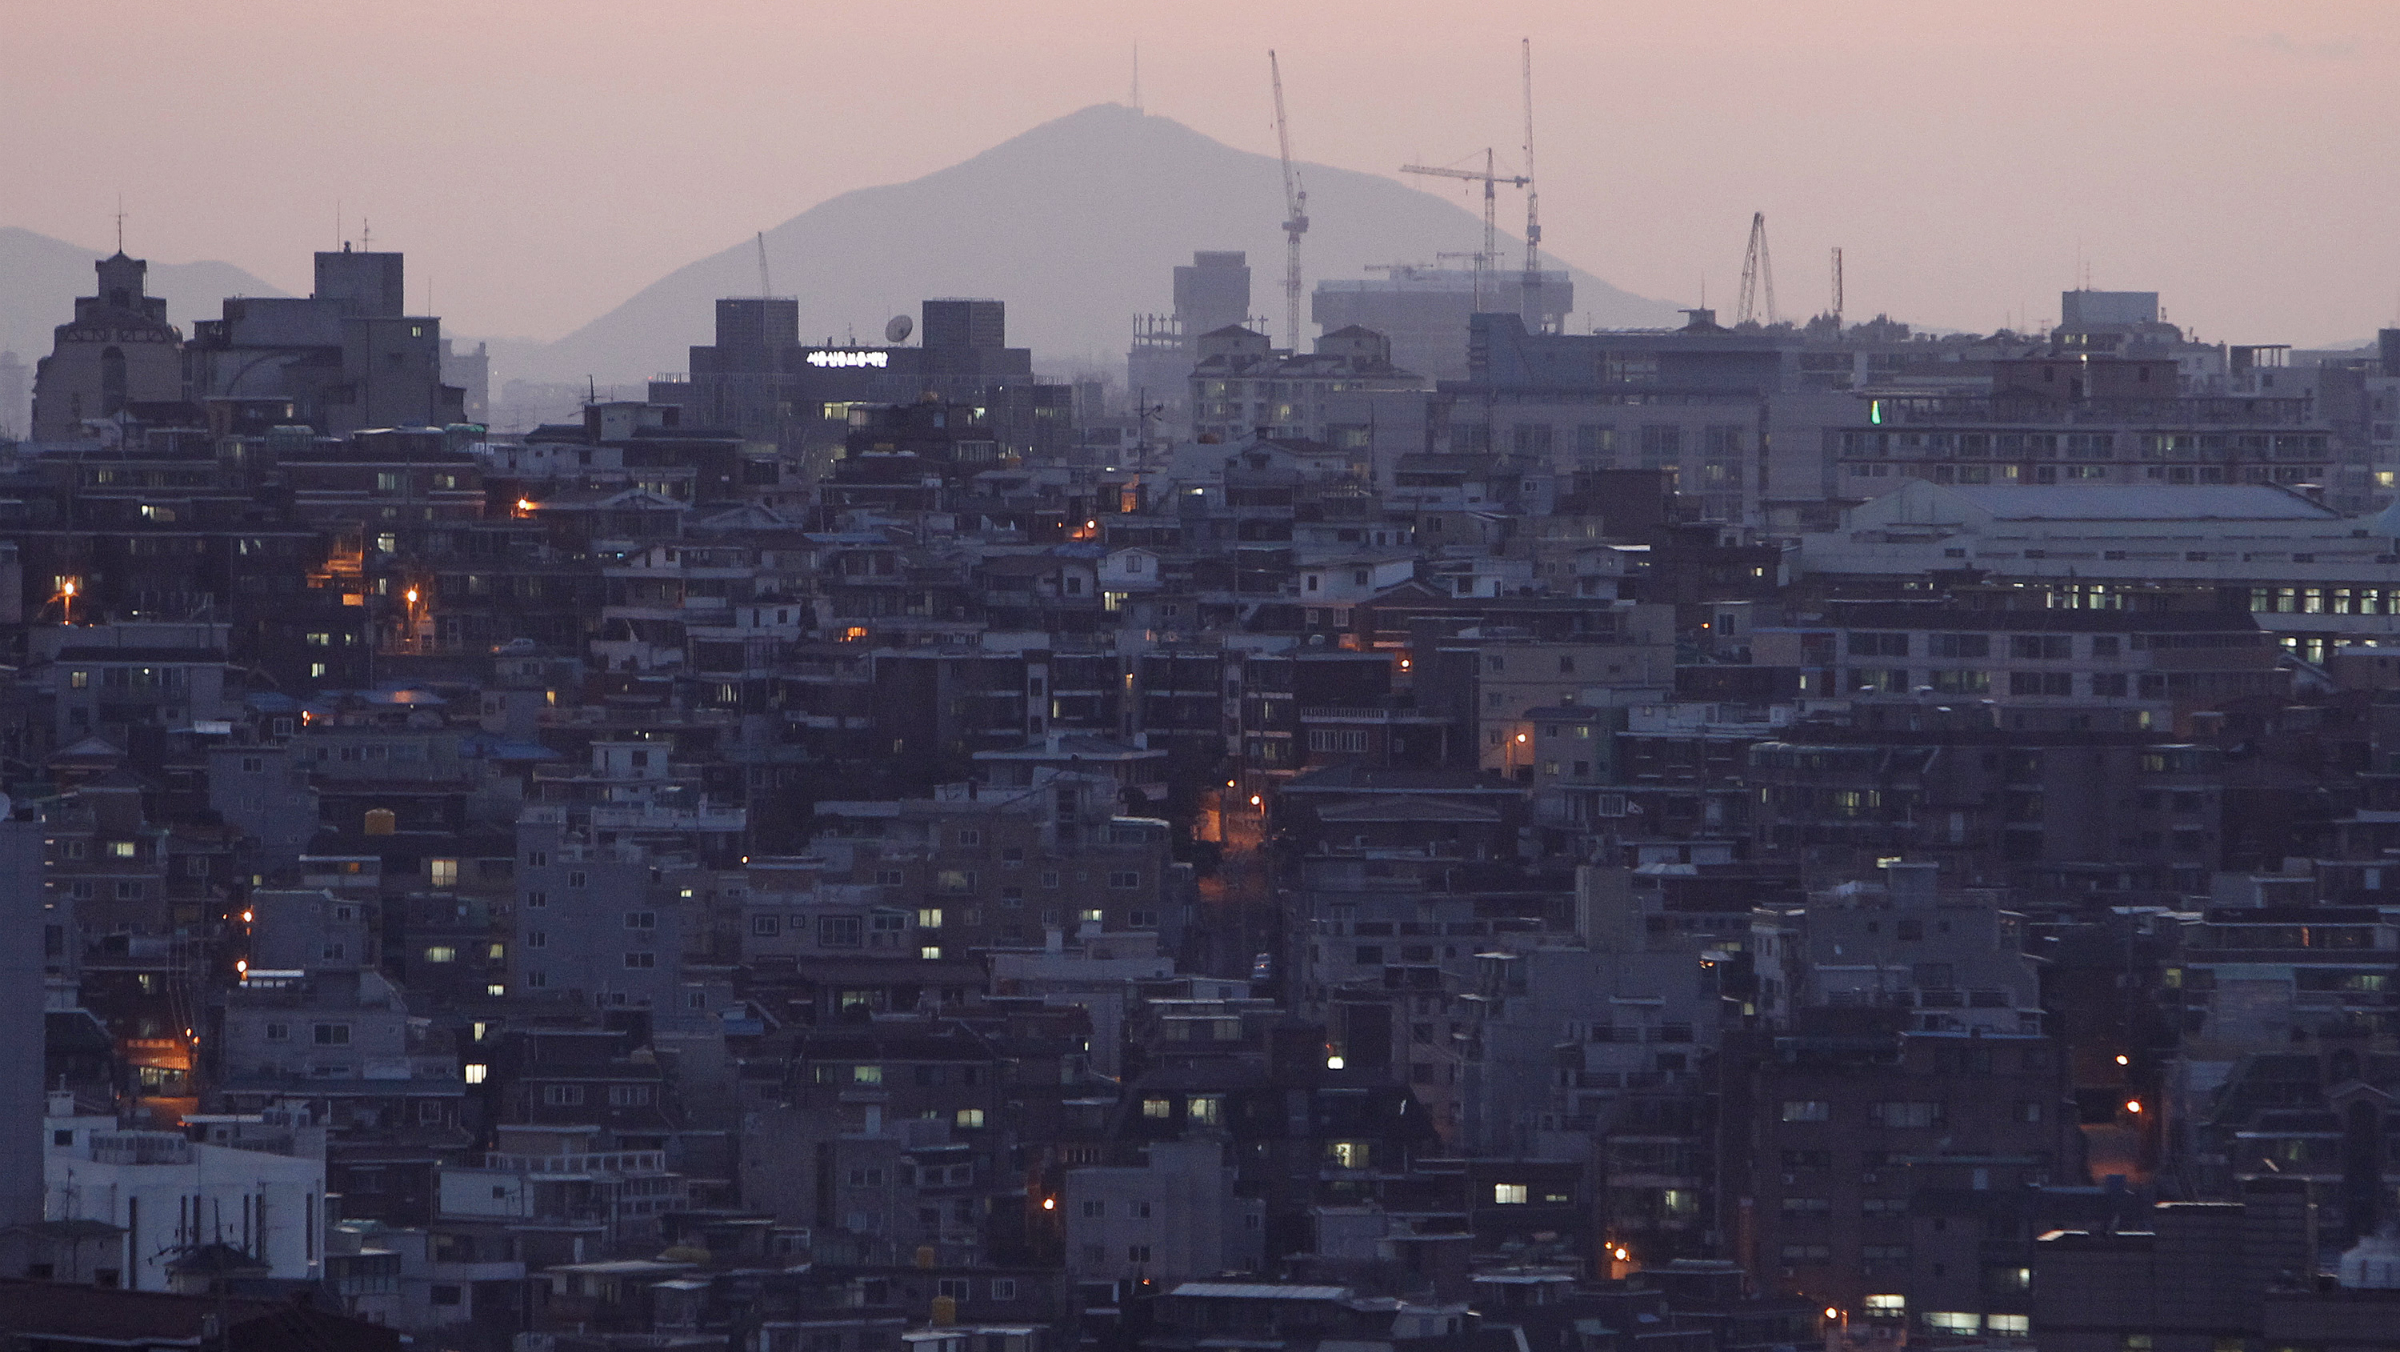 It takes $290,000 in cash to rent an apartment in Seoul — Quartz